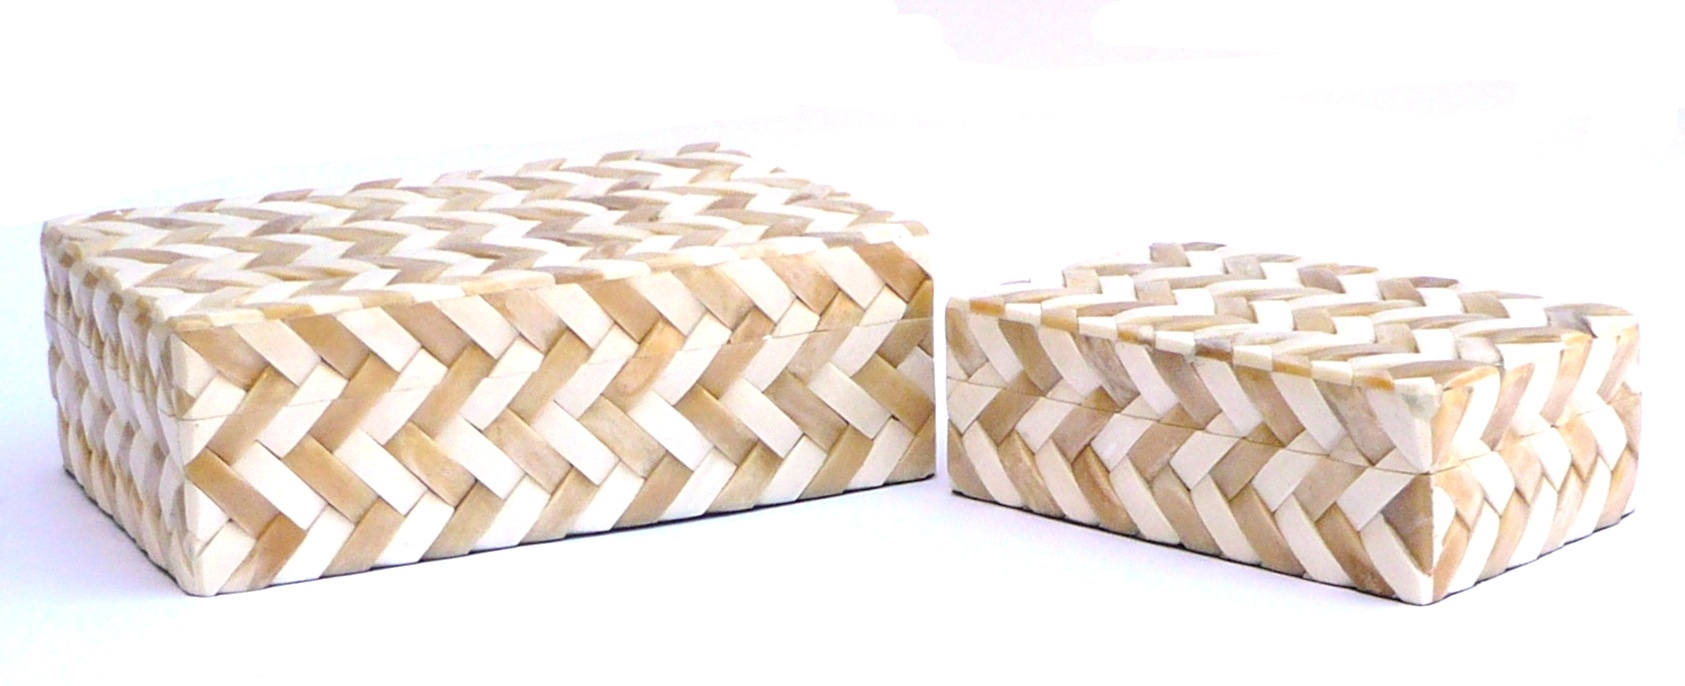 Two Tone Bone Weave Box     9×6x3h   BIT588S     8×12×4h   BIT588L